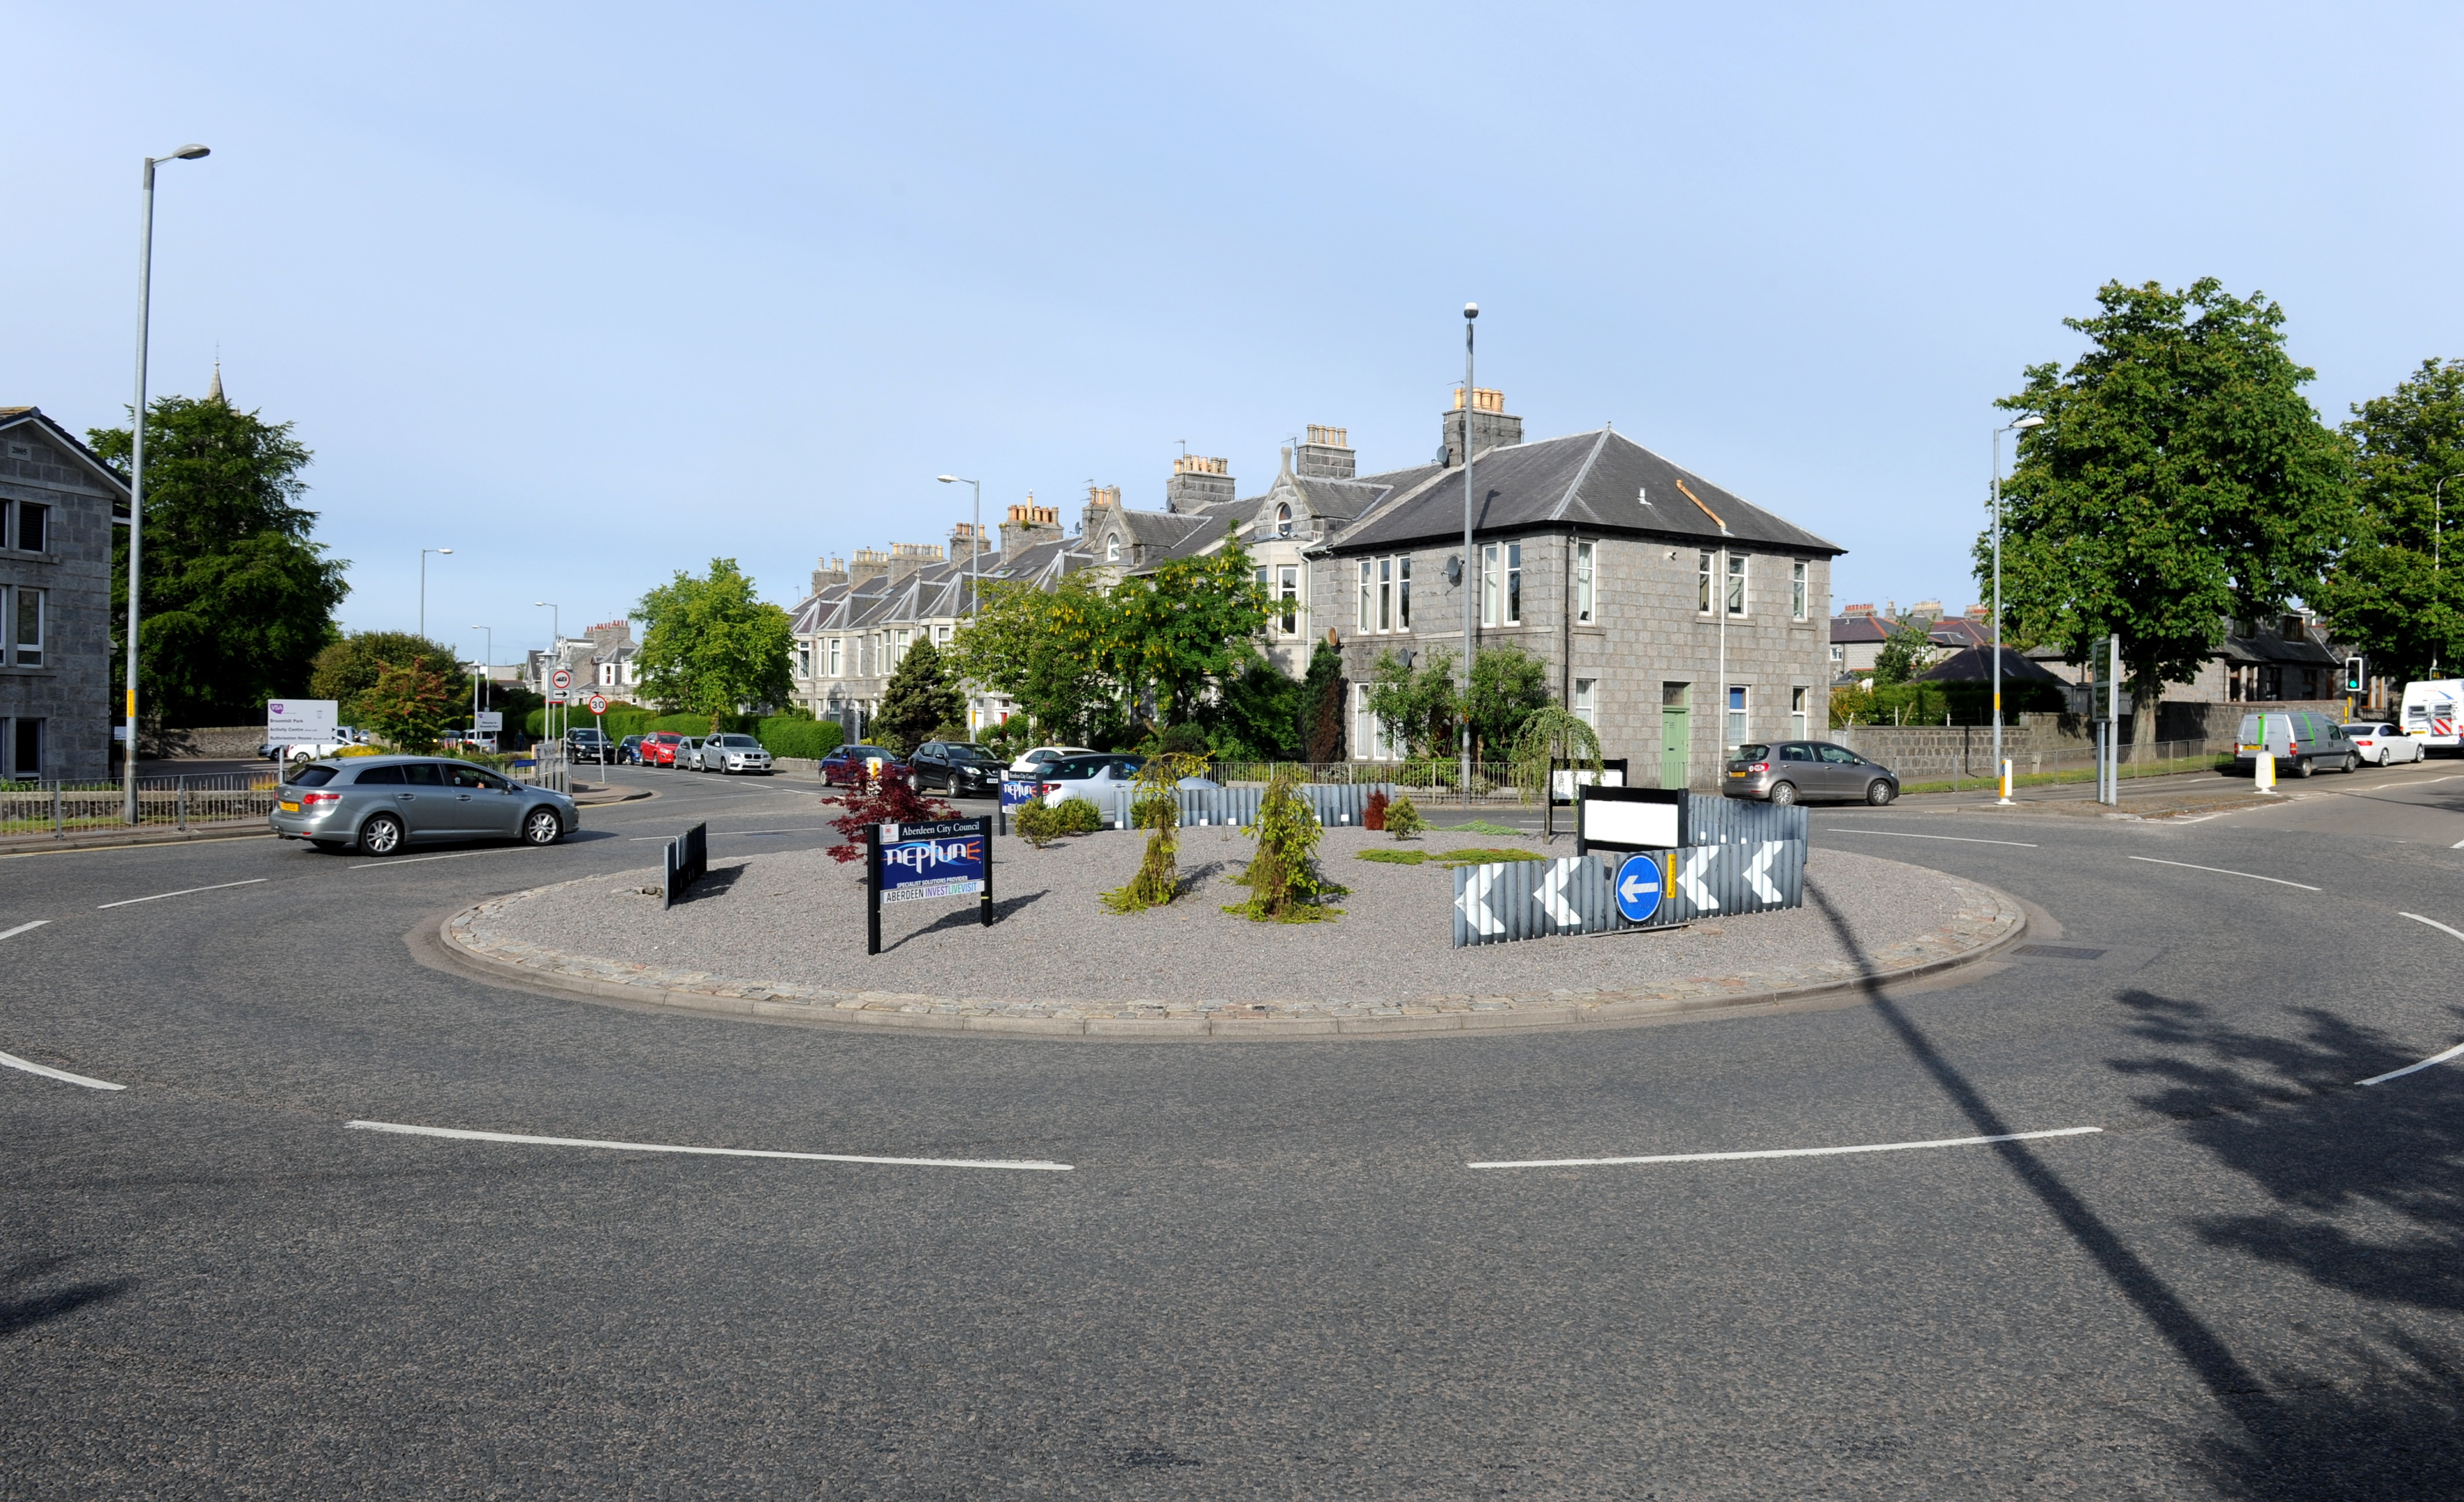 The spill is affecting the Broomhill roundabout.